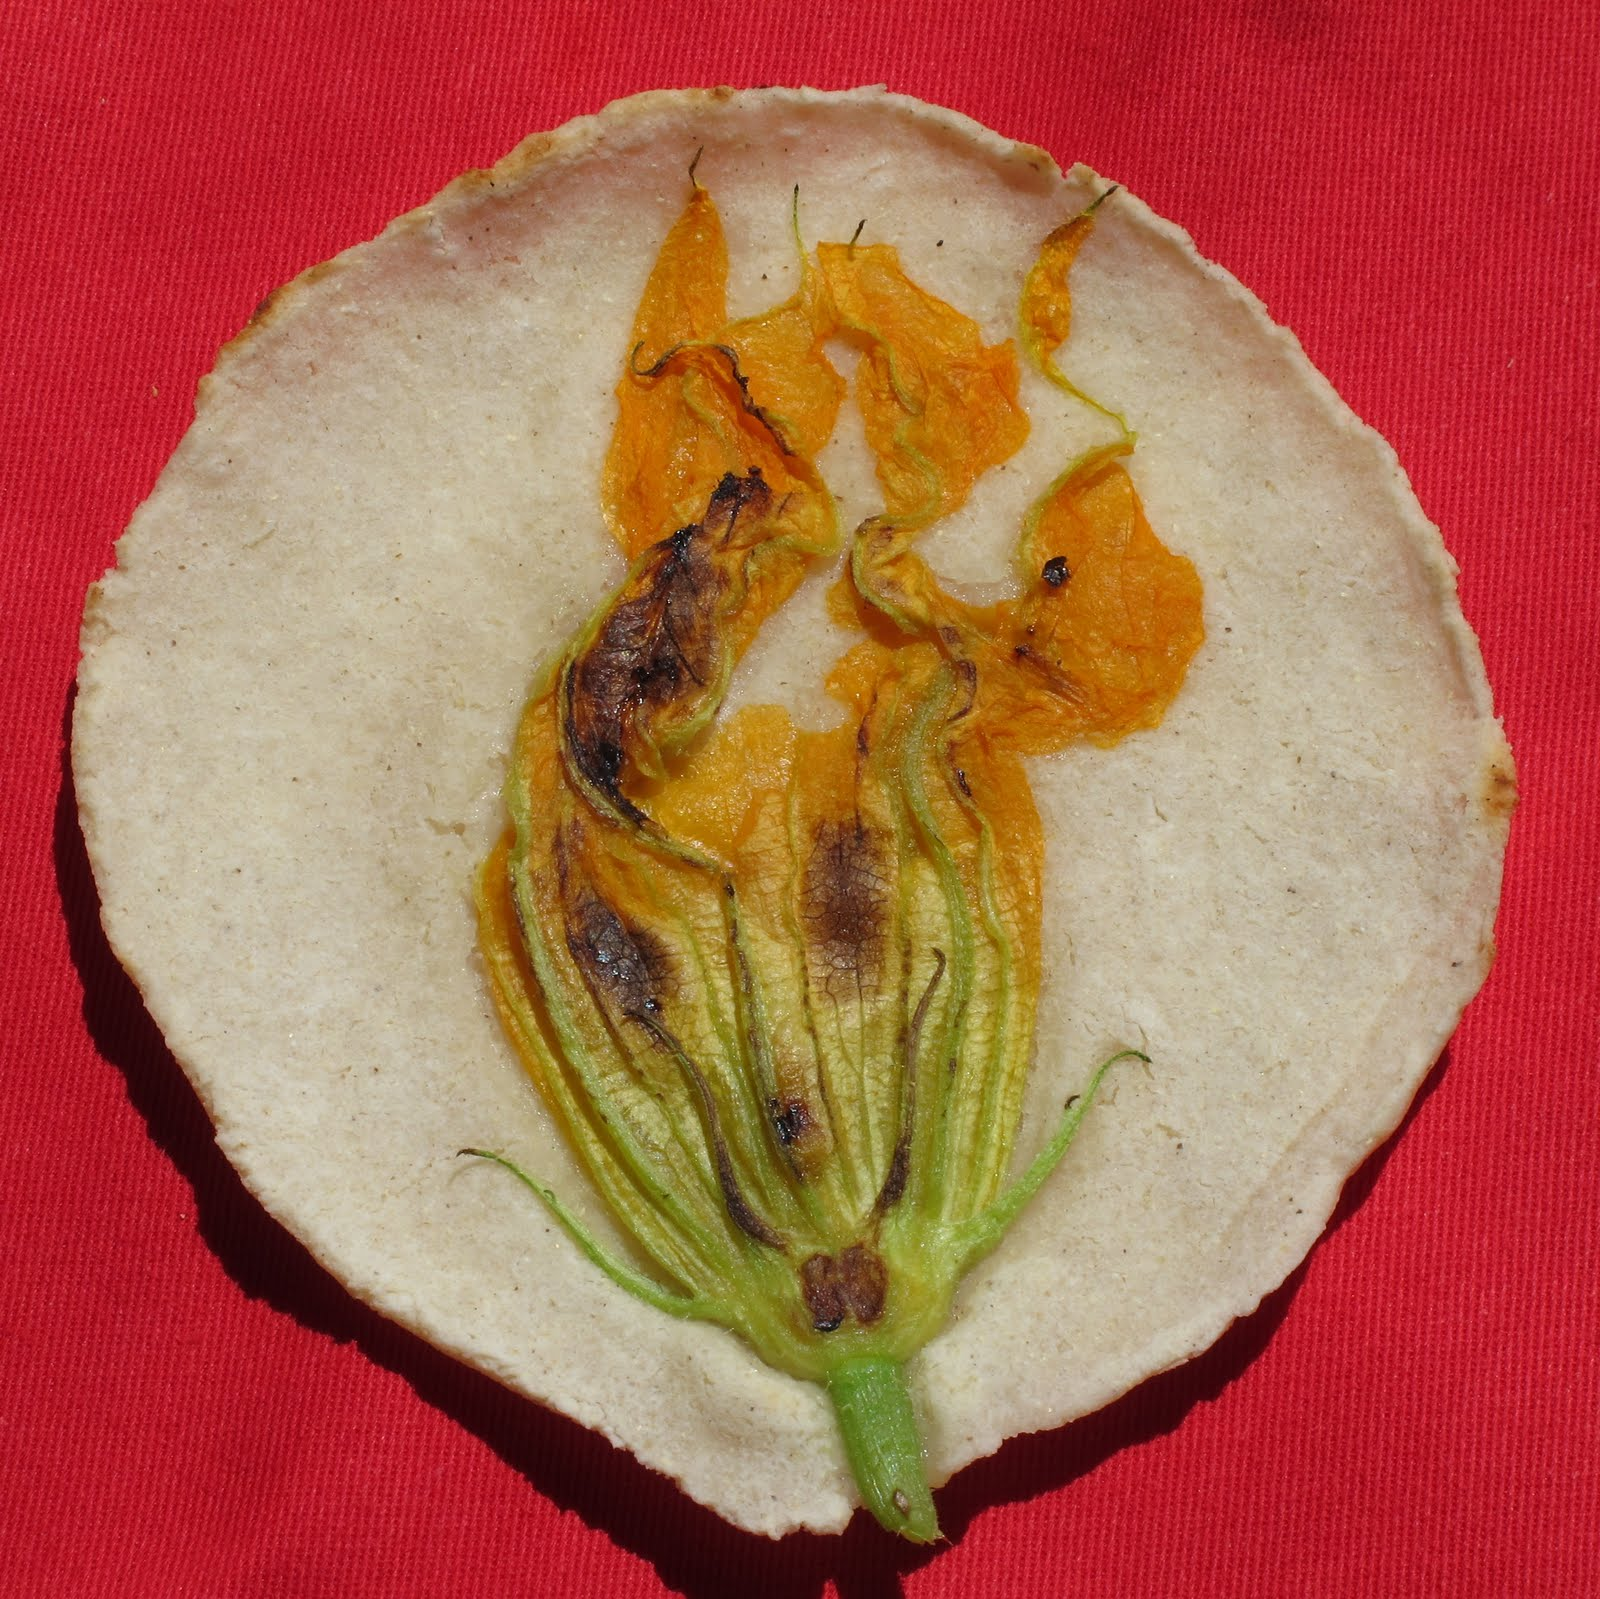 Fresh corn tortillas with zucchini flowers